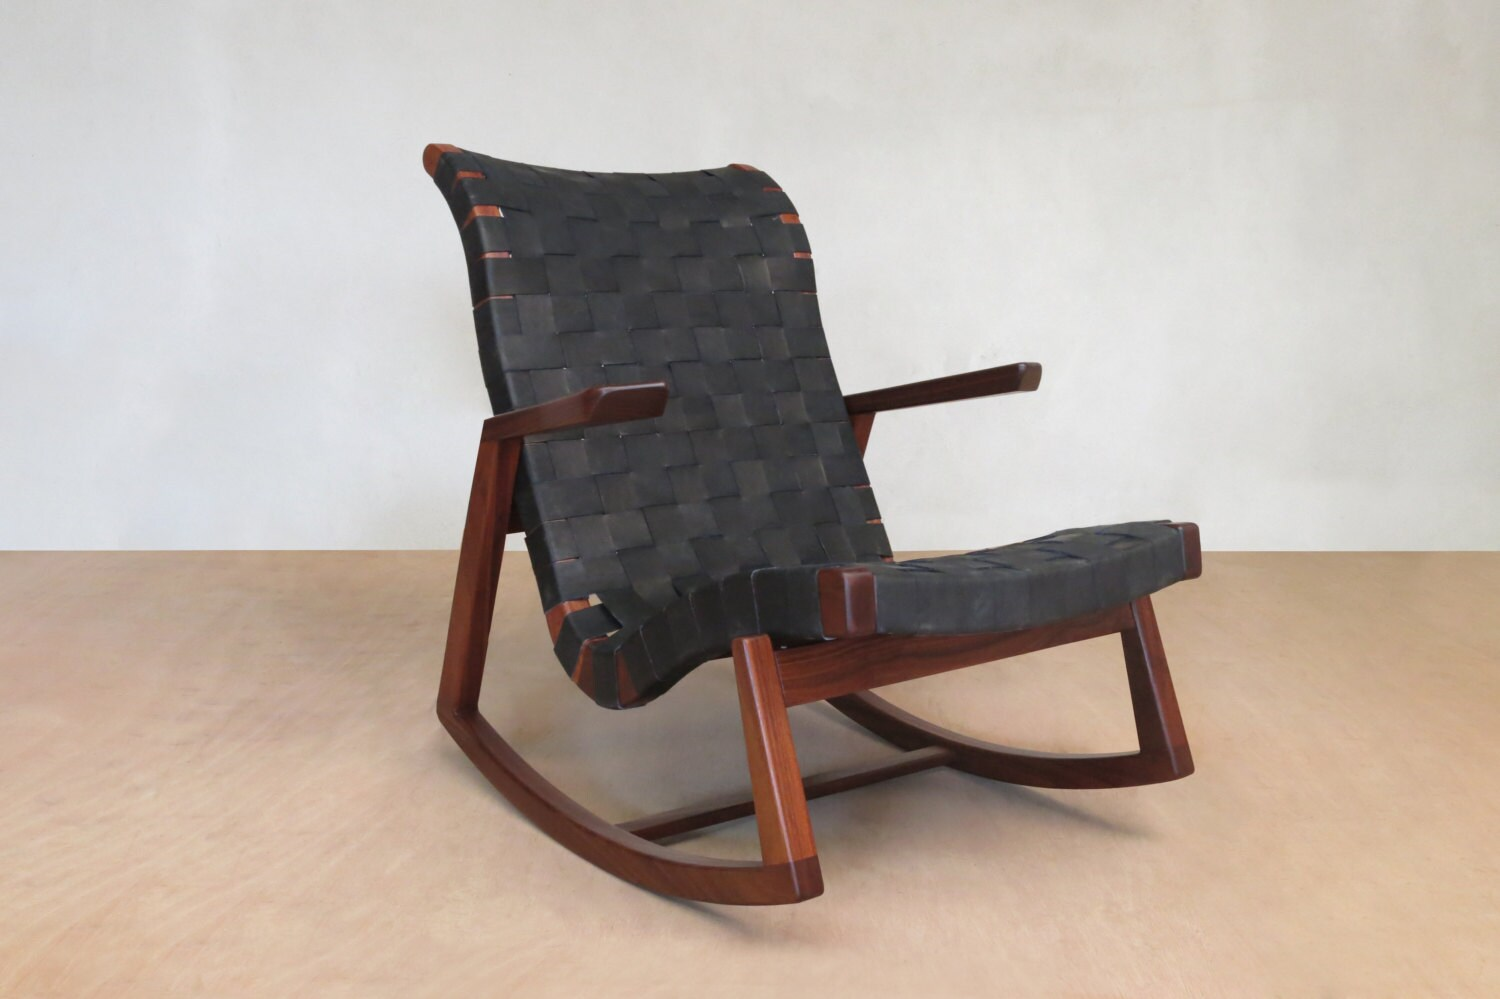 Superbe Midcentury Modern, Rocking Chair, Black Leather Handwoven, Lounge Chair,  Living Room Chair, Handmade Furniture, Sustainable Wood